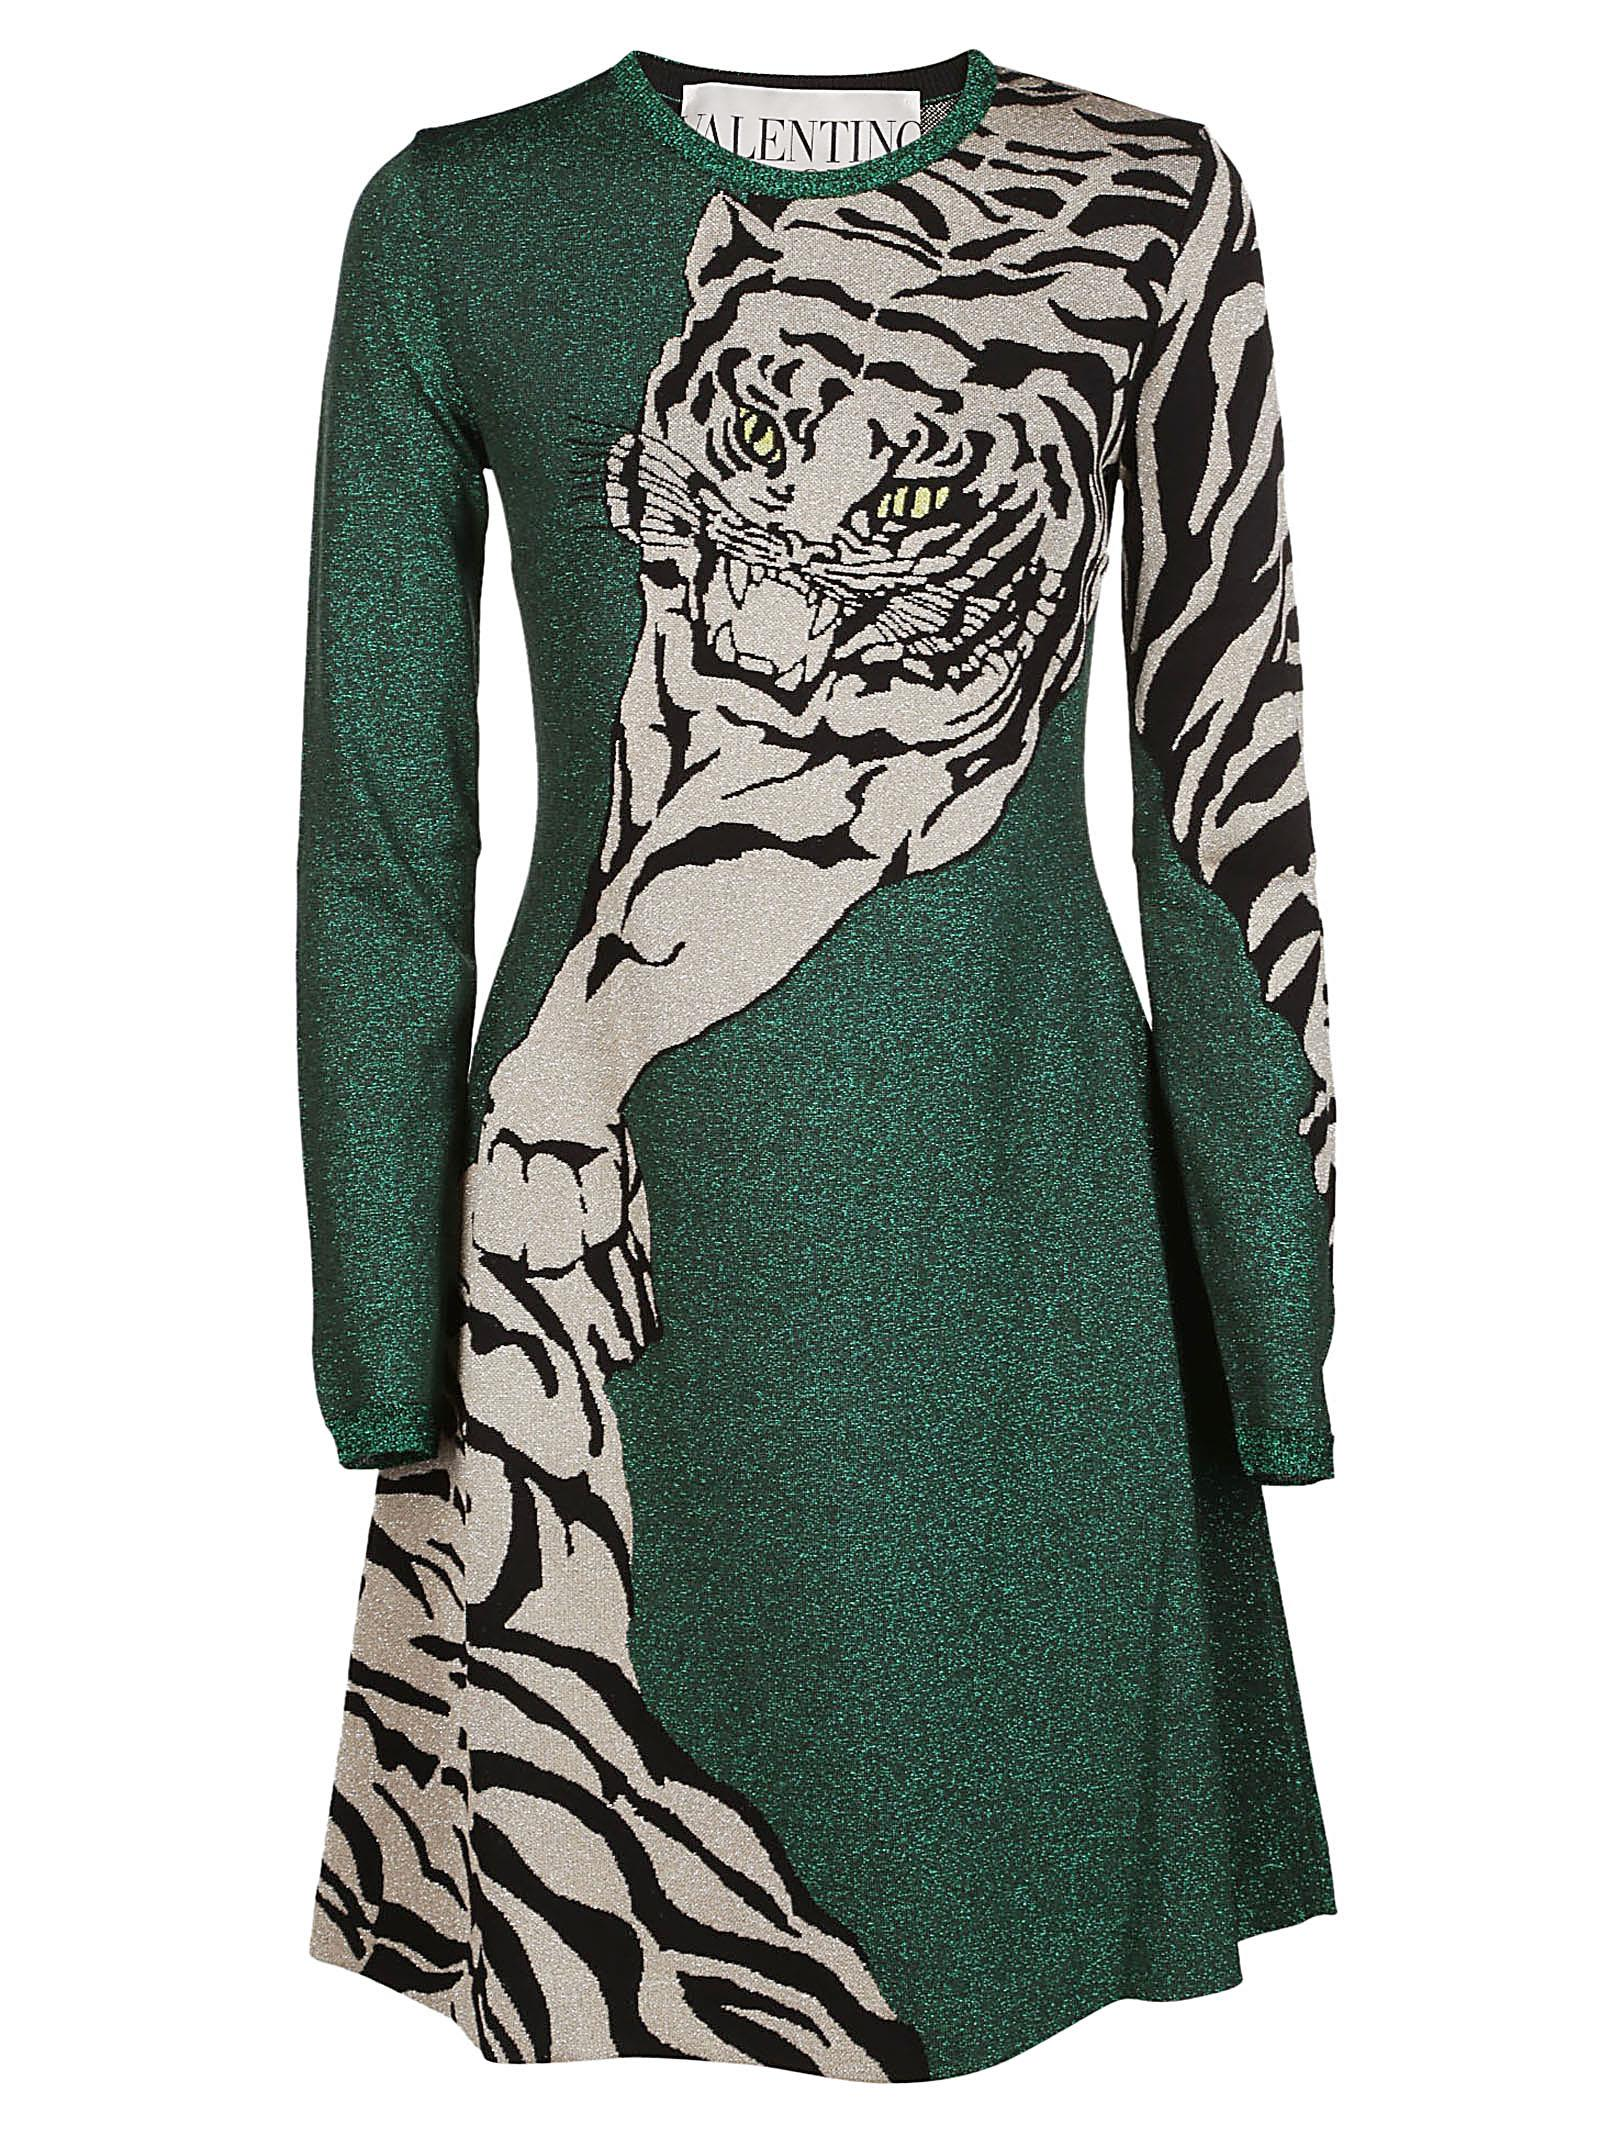 Valentino Tiger Motif Dress